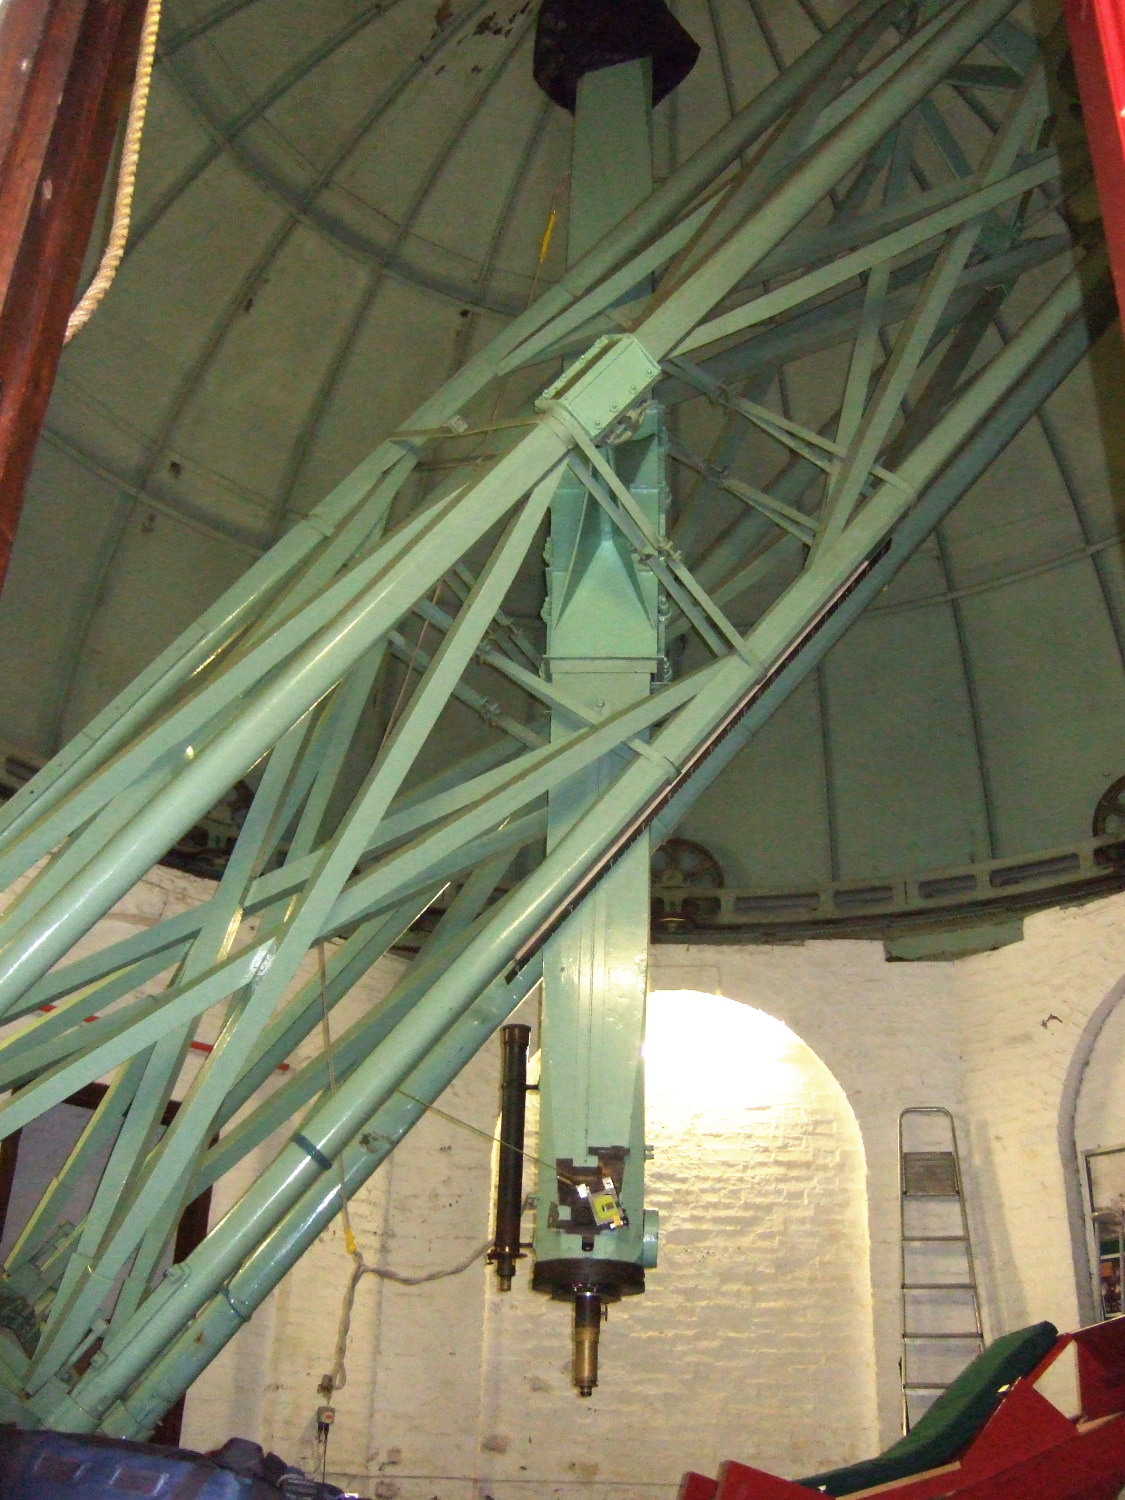 The 12 inch refracting telescope paid for by the Duke of Northumberland in 1833. It was the first telescope to see Neptune, however it didn't actually prove it was there first so didn't get the credit.